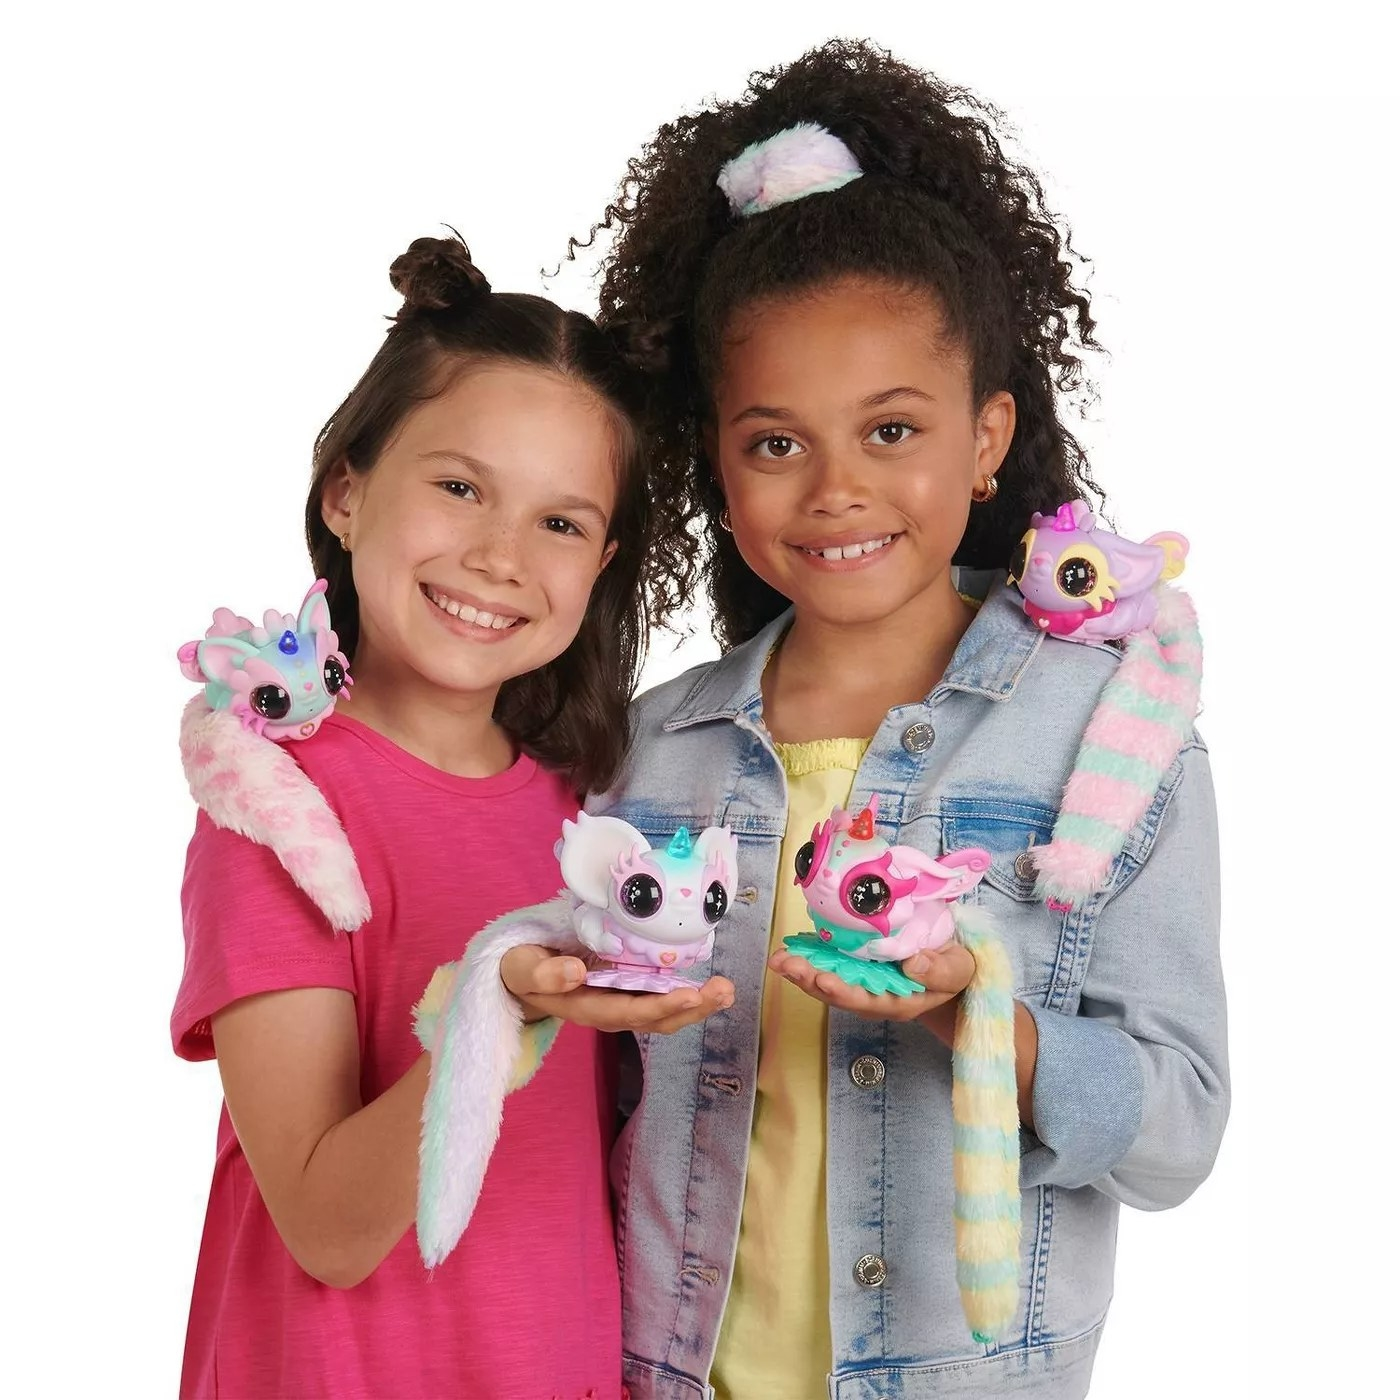 Two kids holding Pixie Belle toys